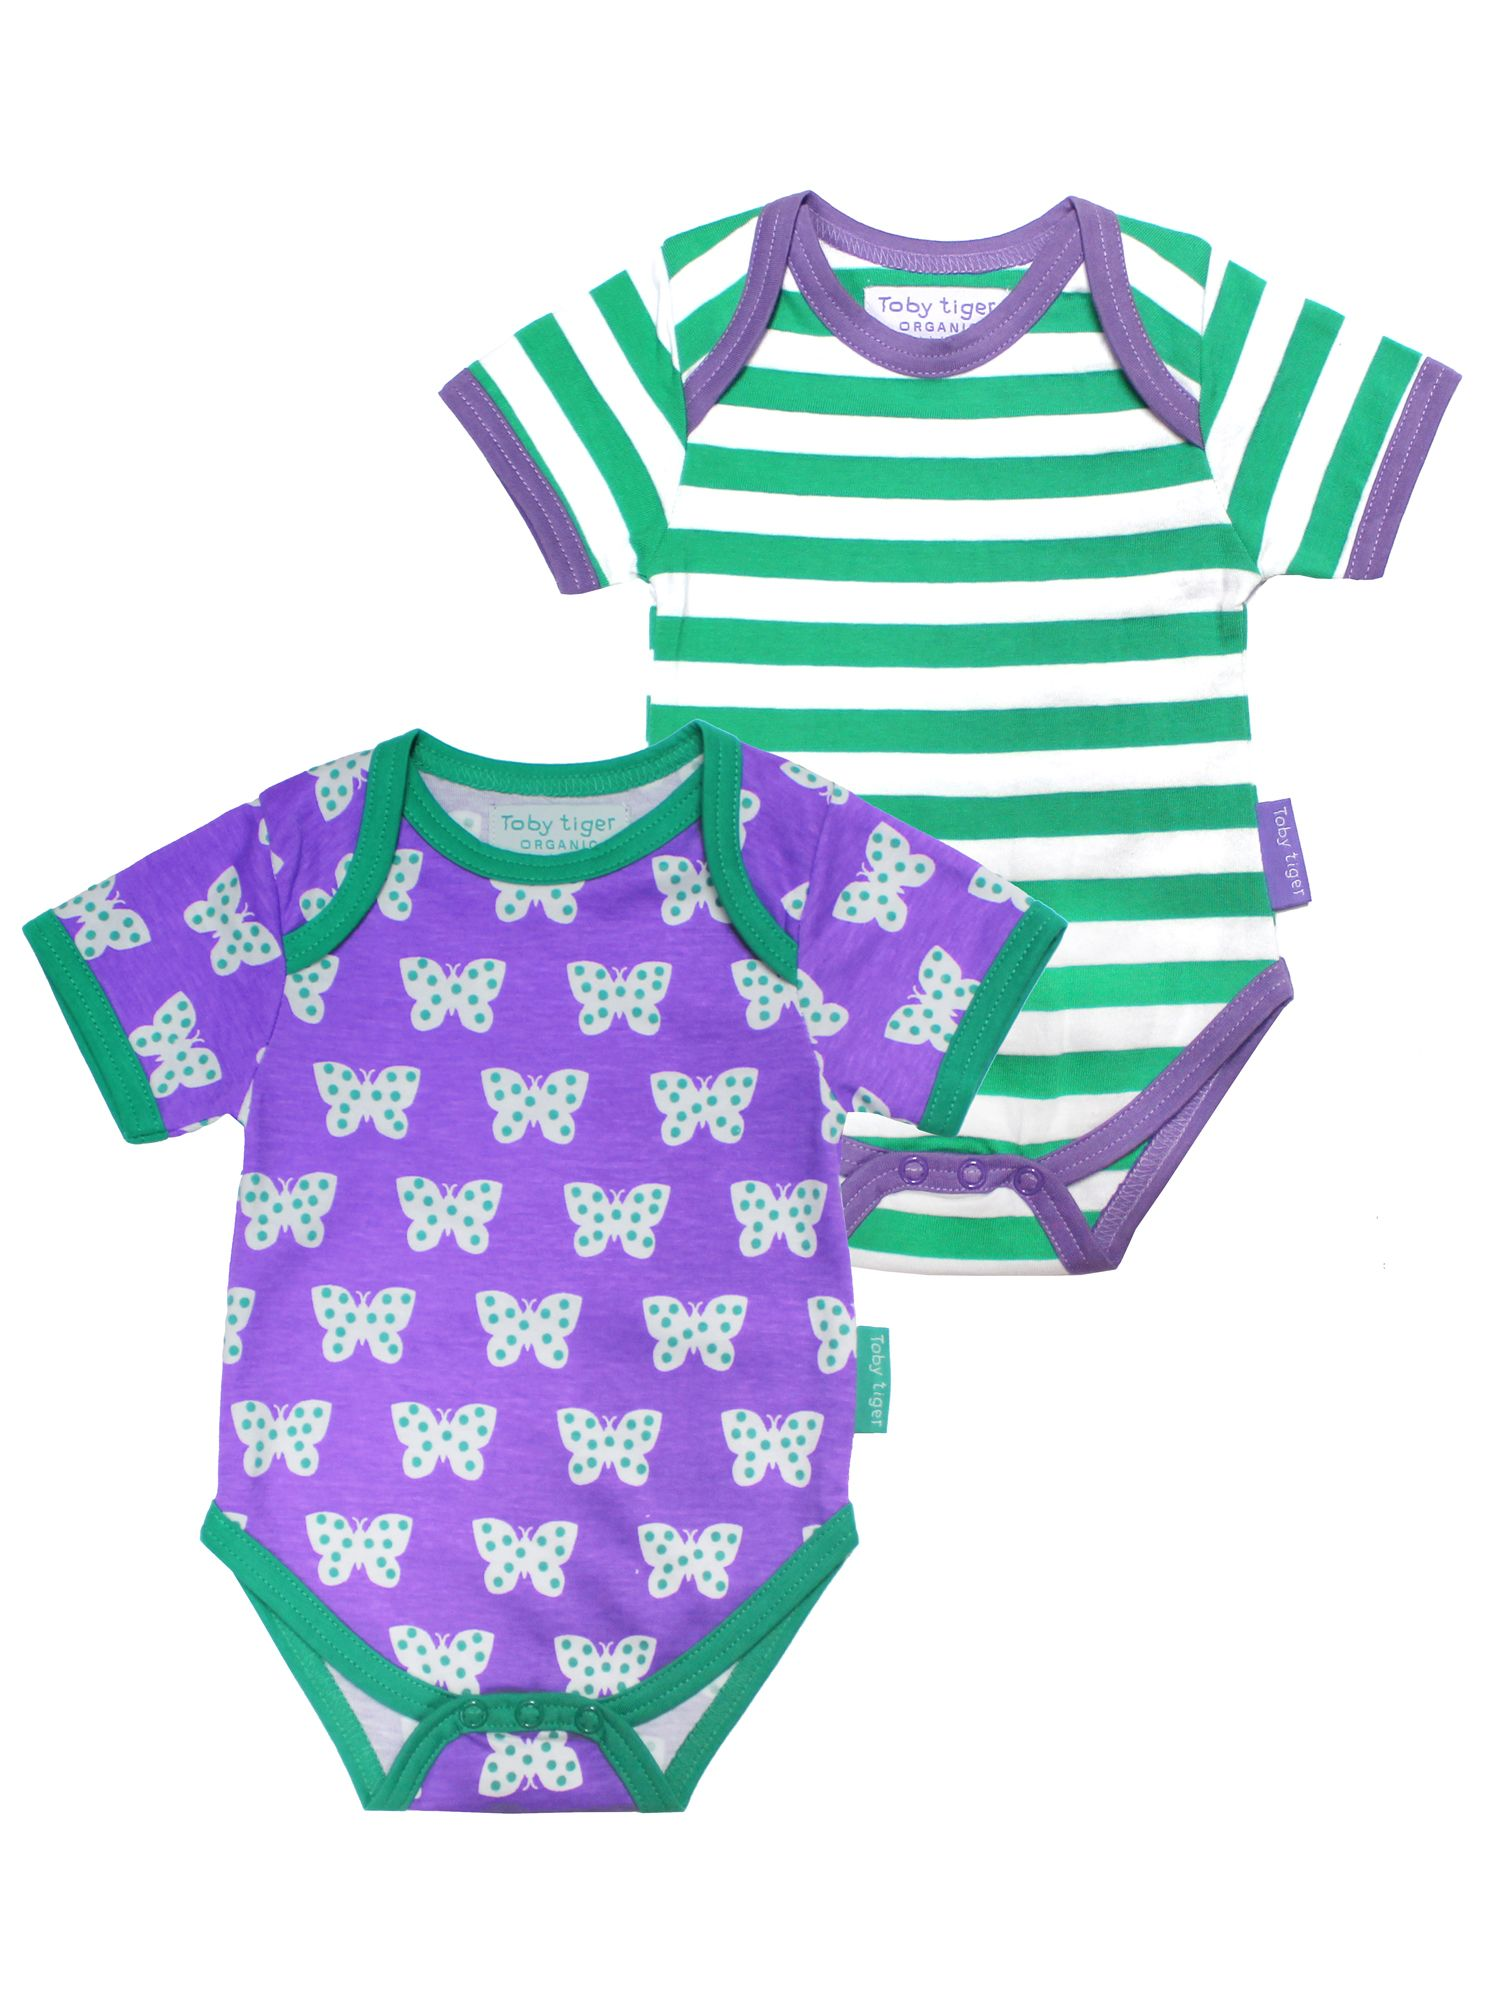 Shop for baby clothes for all ages, including infants and toddlers. Find great deals on all clothes for babies at Baby Depot. Free Shipping available. Skip to main content. Free Shipping $75+ & Styles, selections, prices and availability may vary by stores and at funon.ml